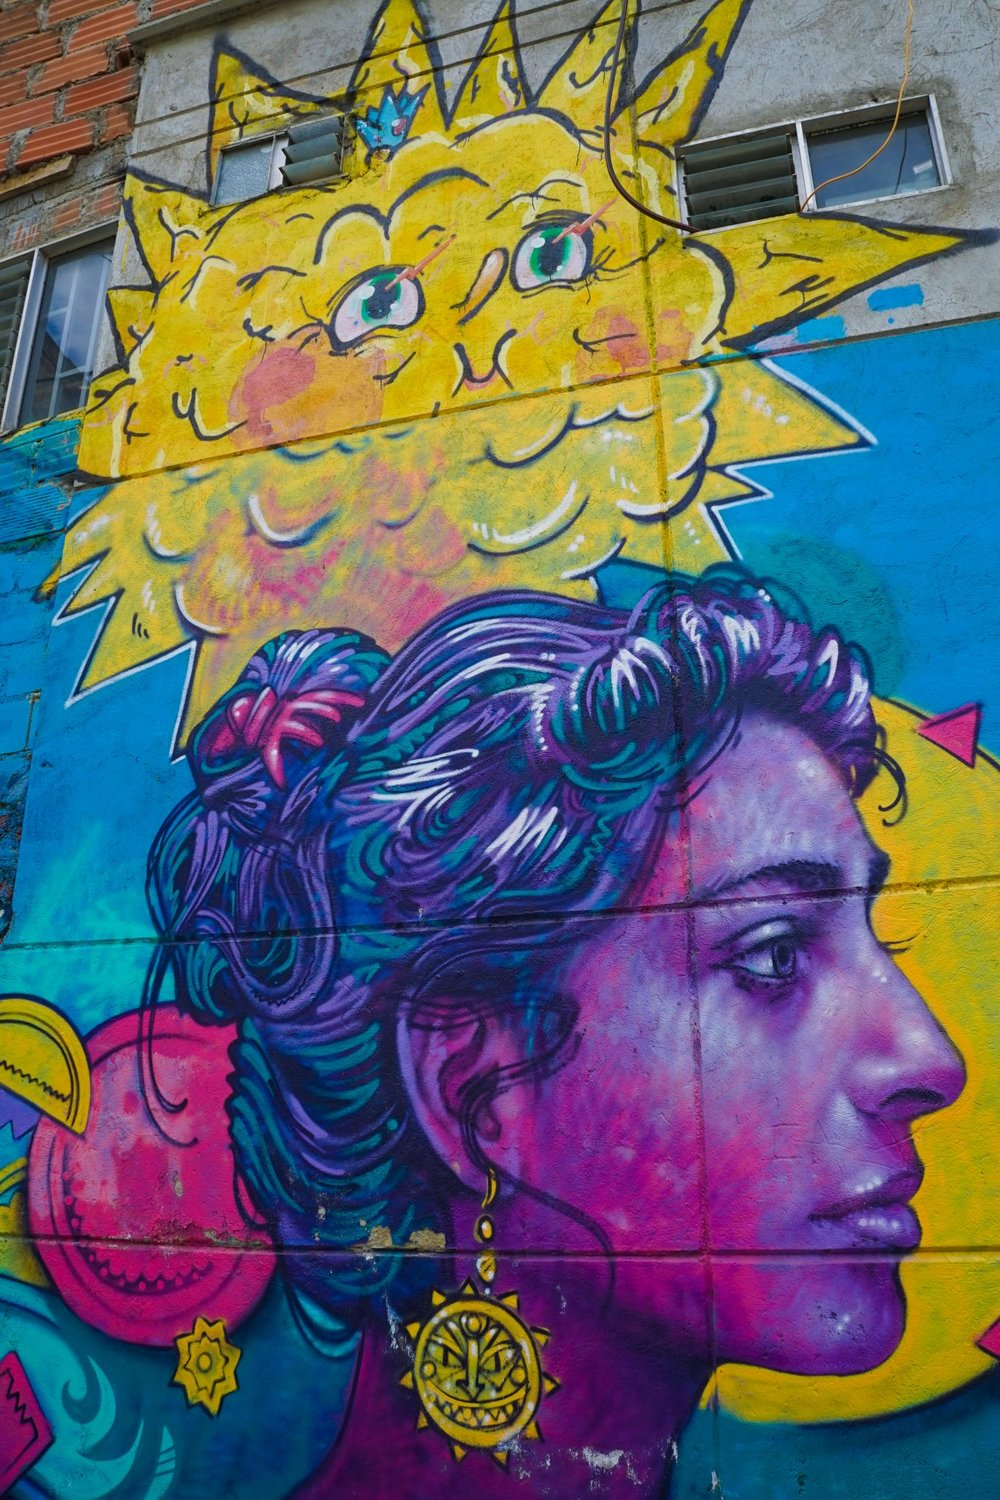 Street art from Comuna 13, from the I nspired By Maps website